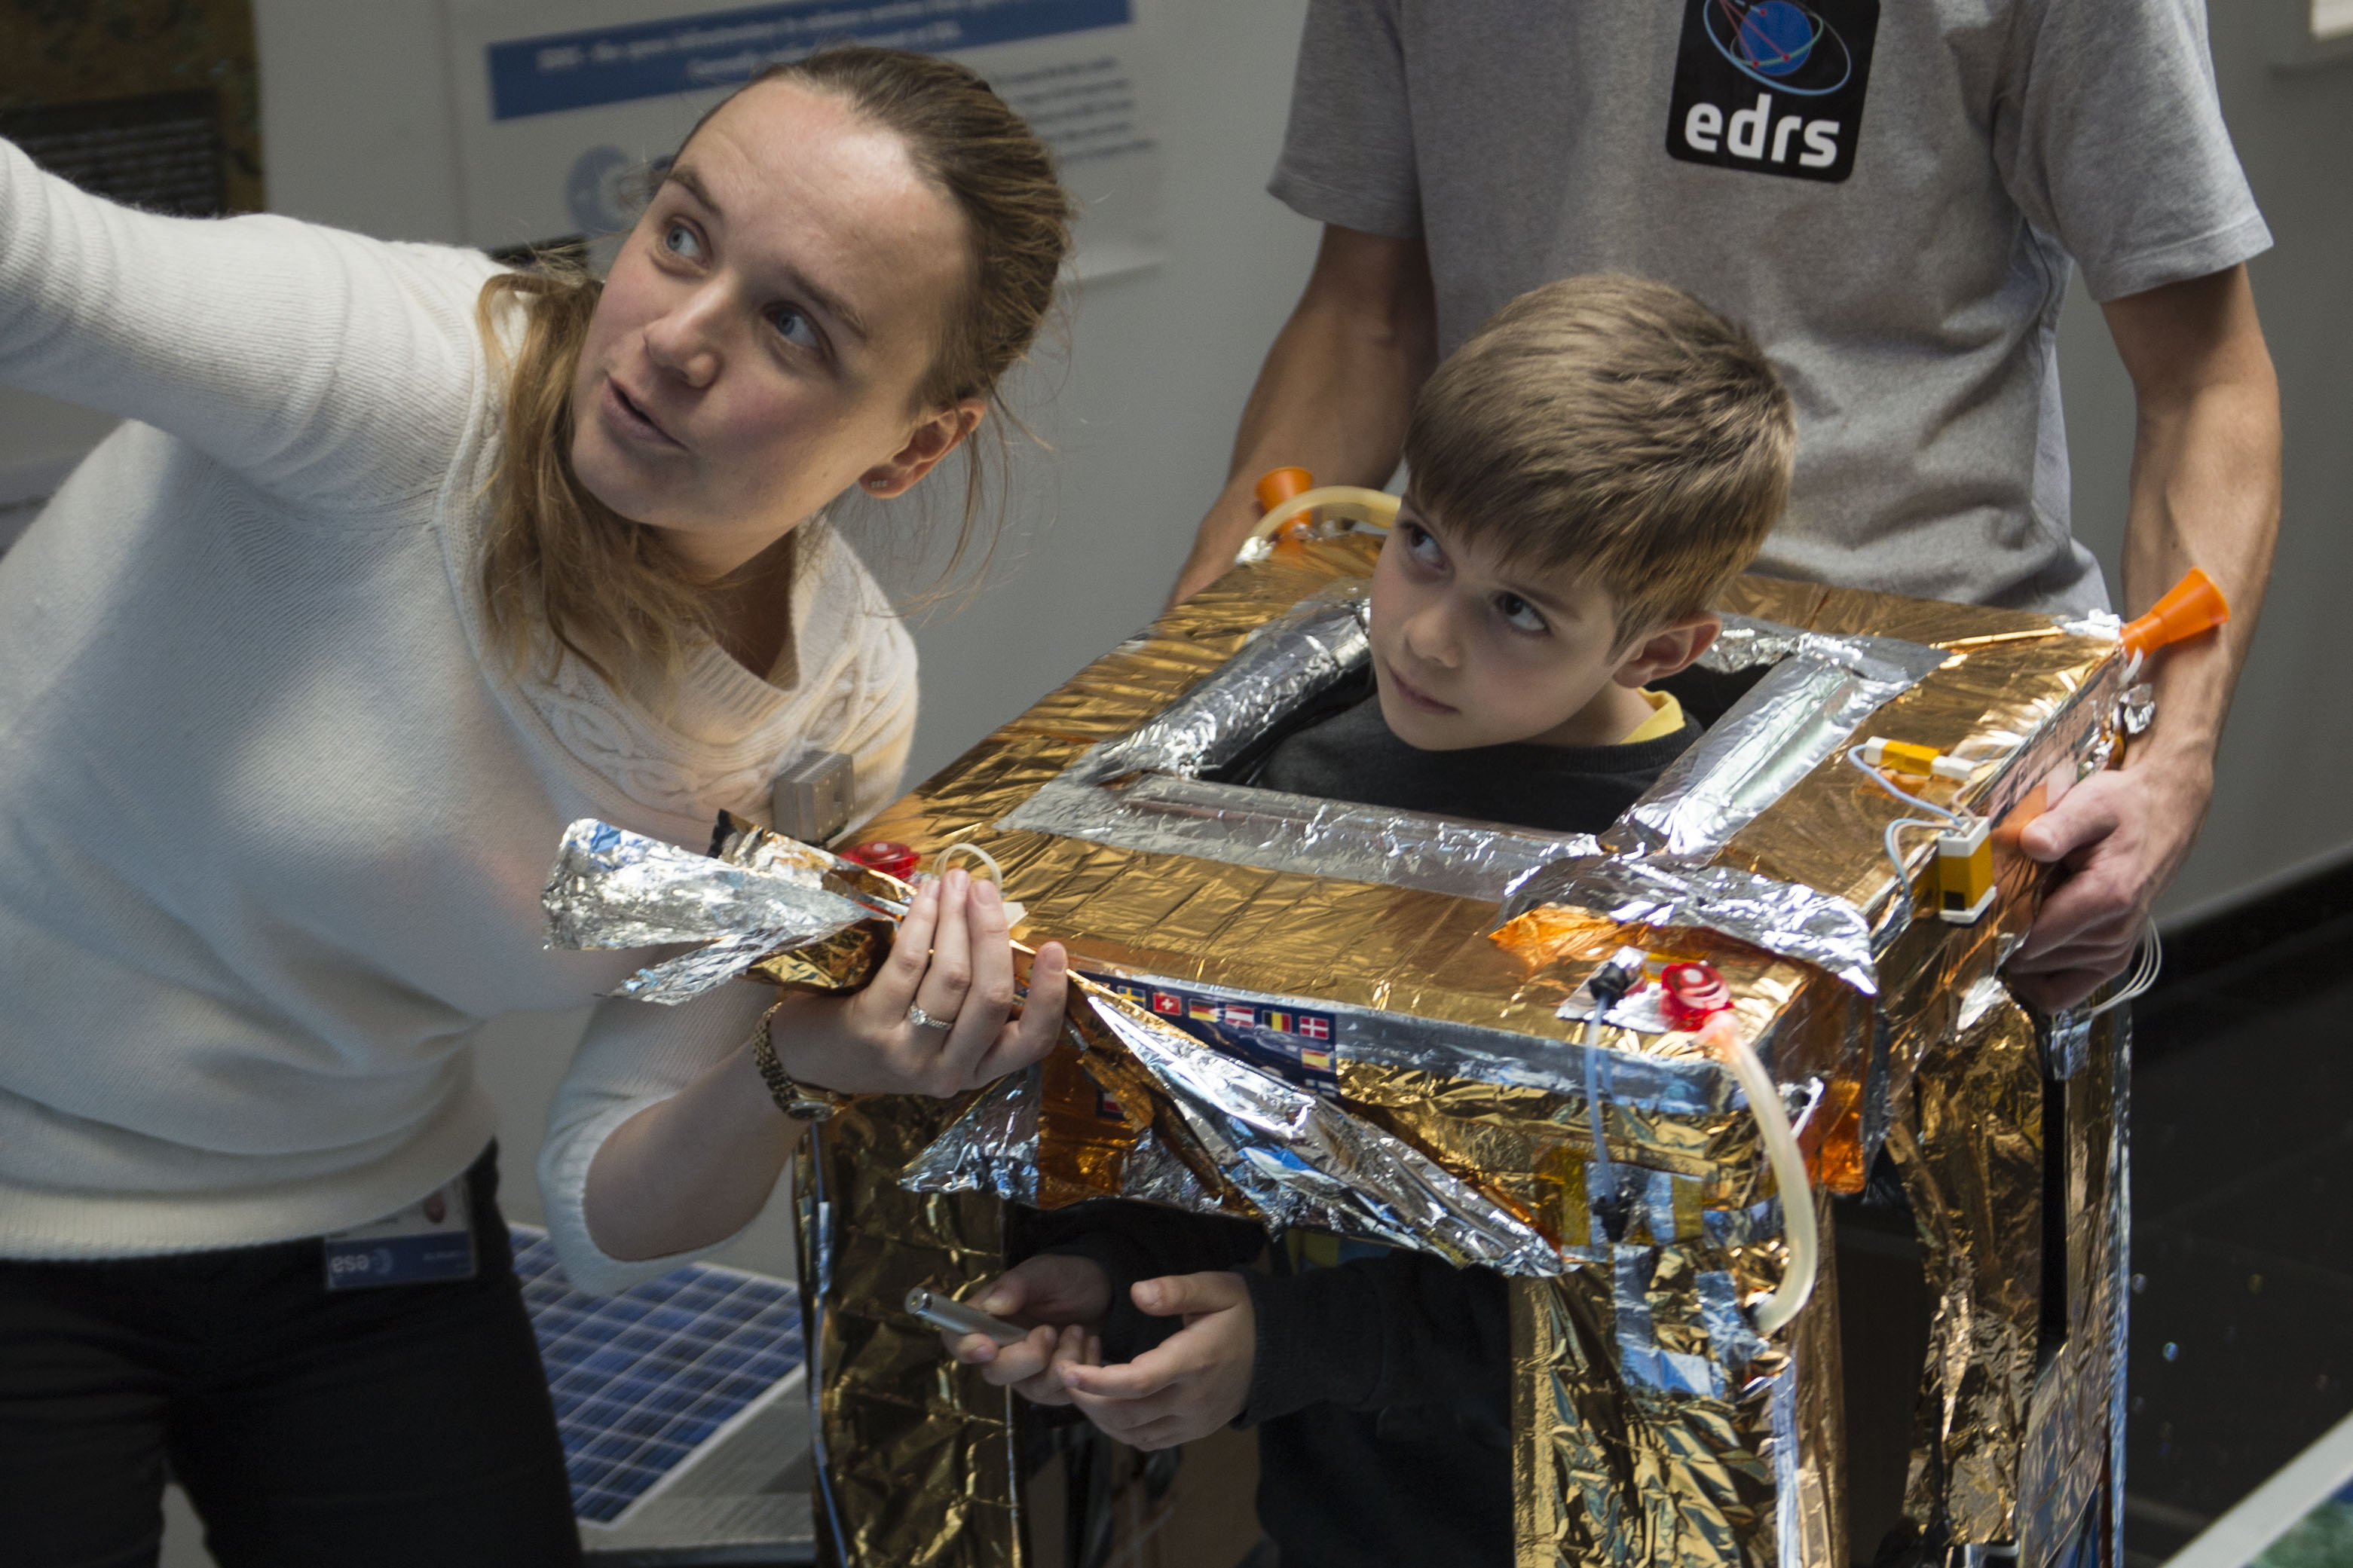 A kid pretending to be an EDRS satellite...